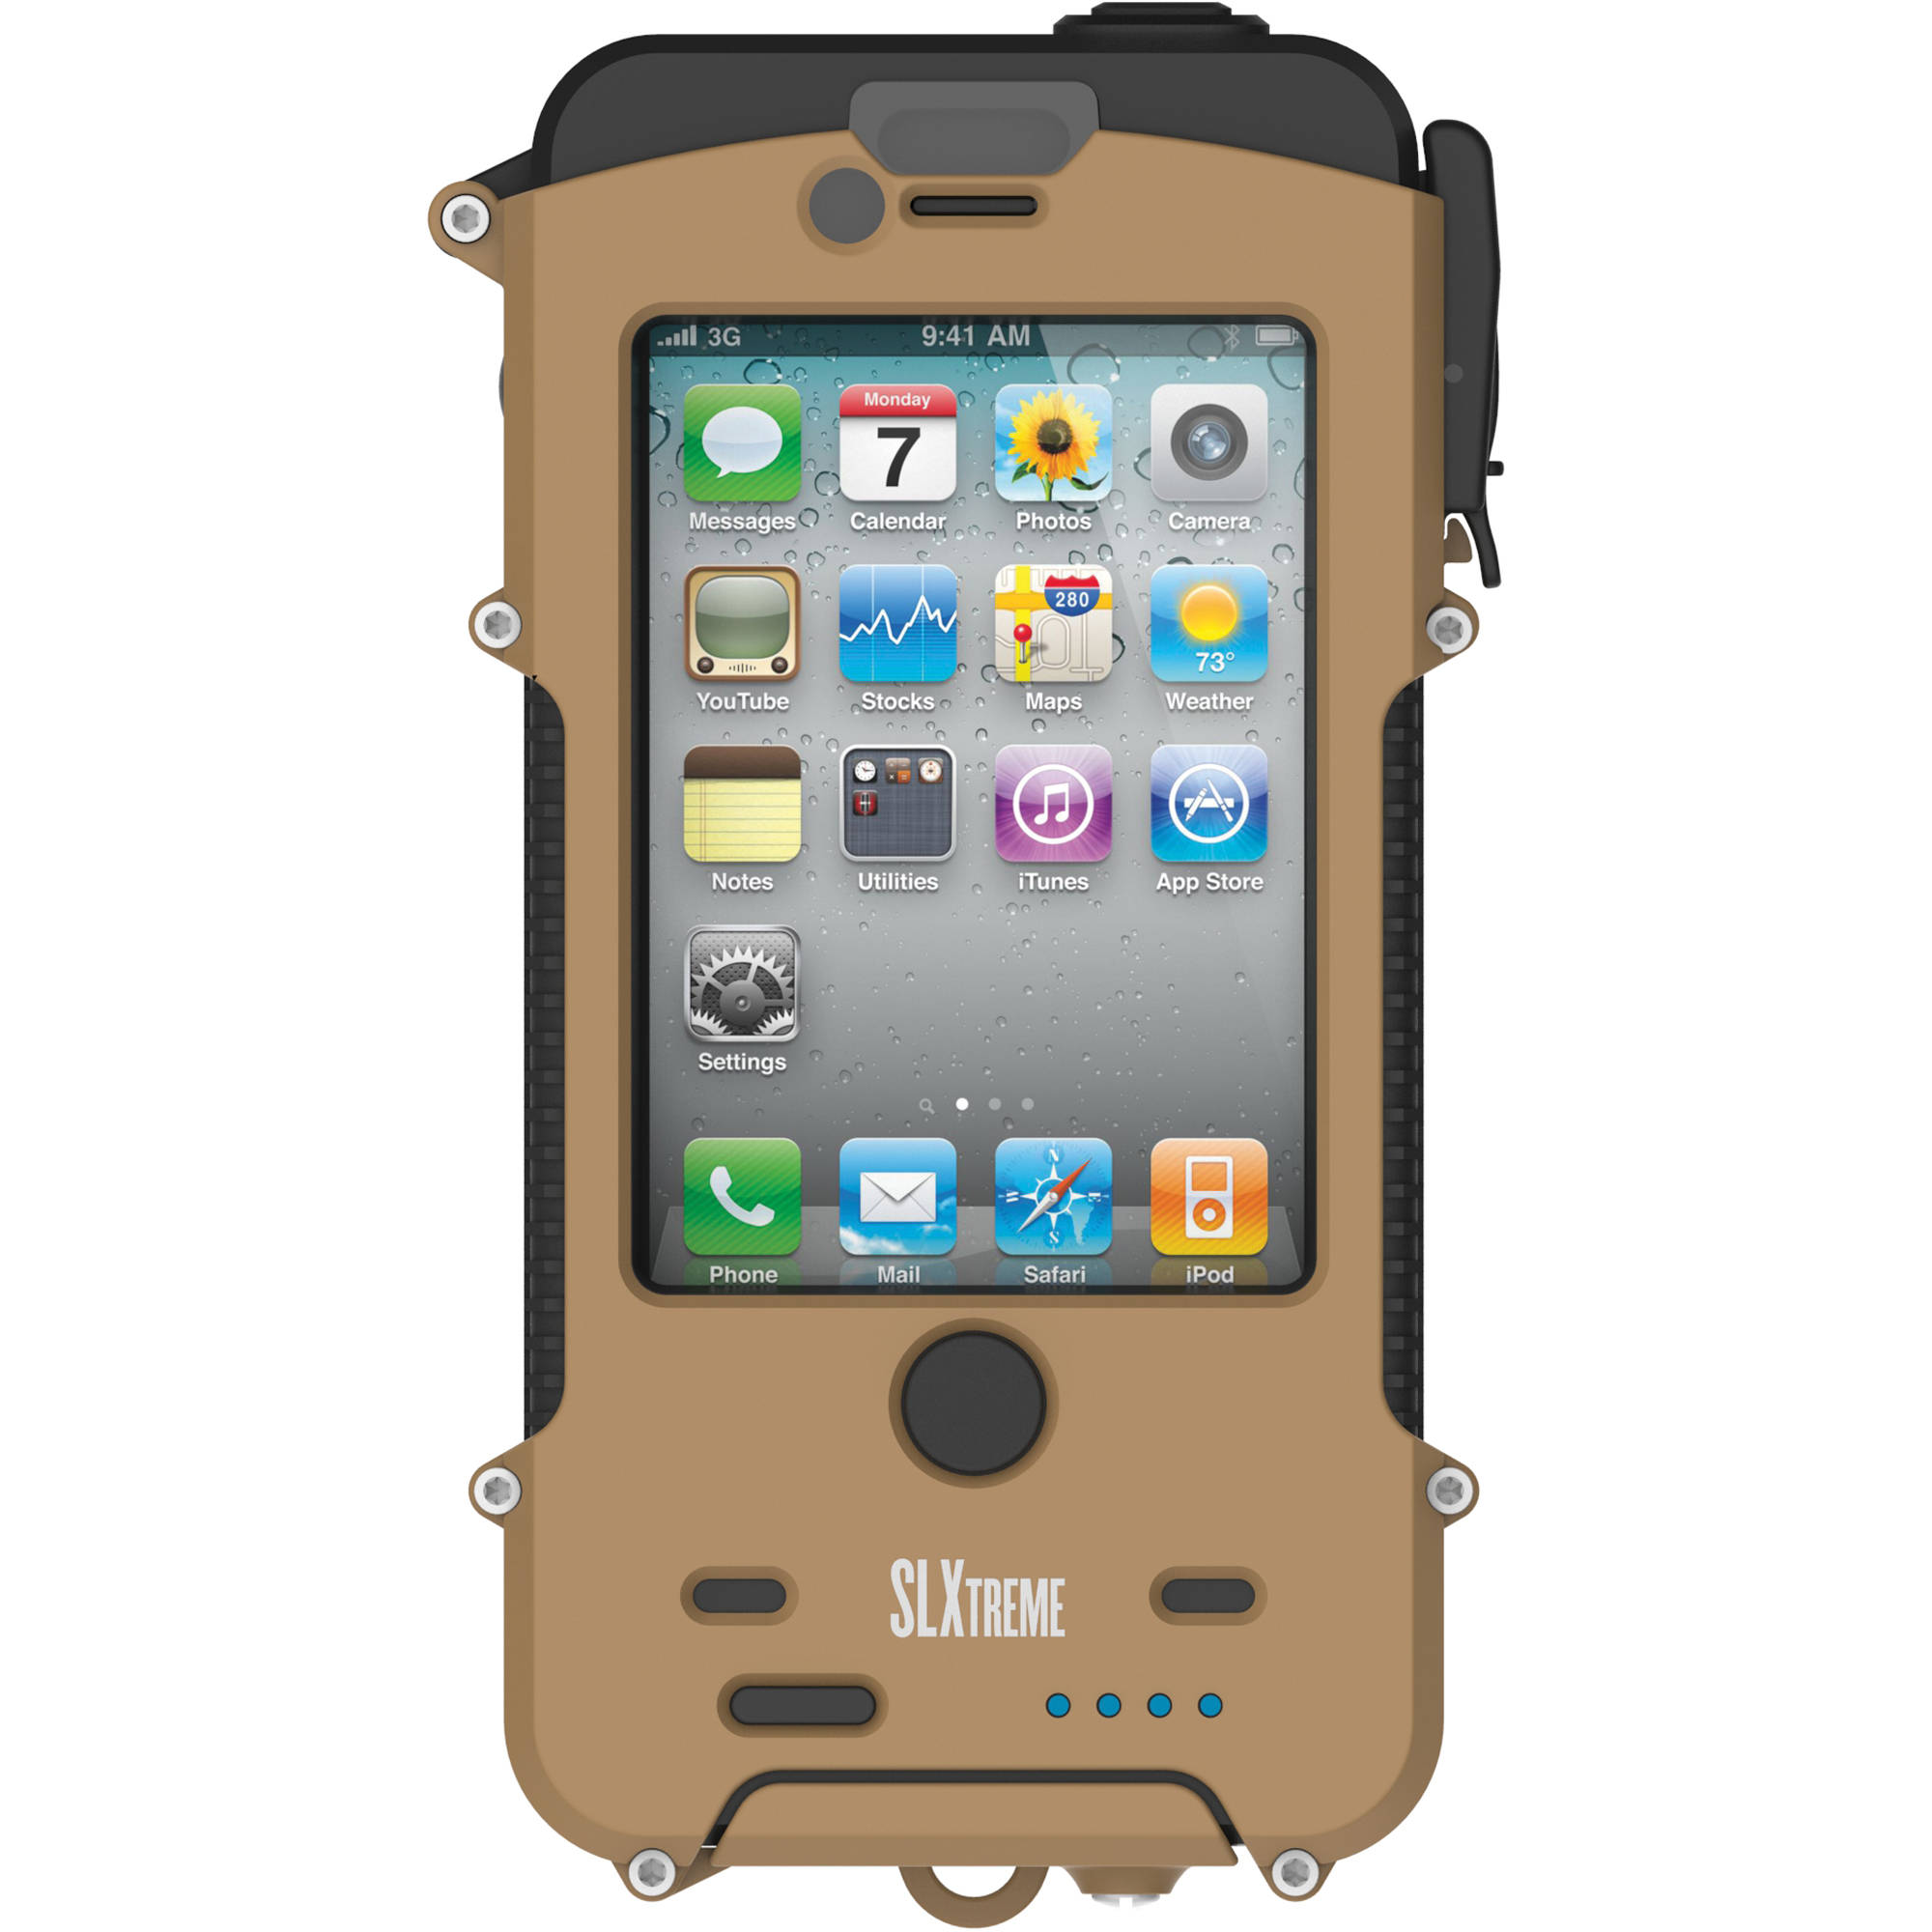 Snow Lizard Slxtreme 4 Waterproof Case For Iphone 4s Coyote Tan